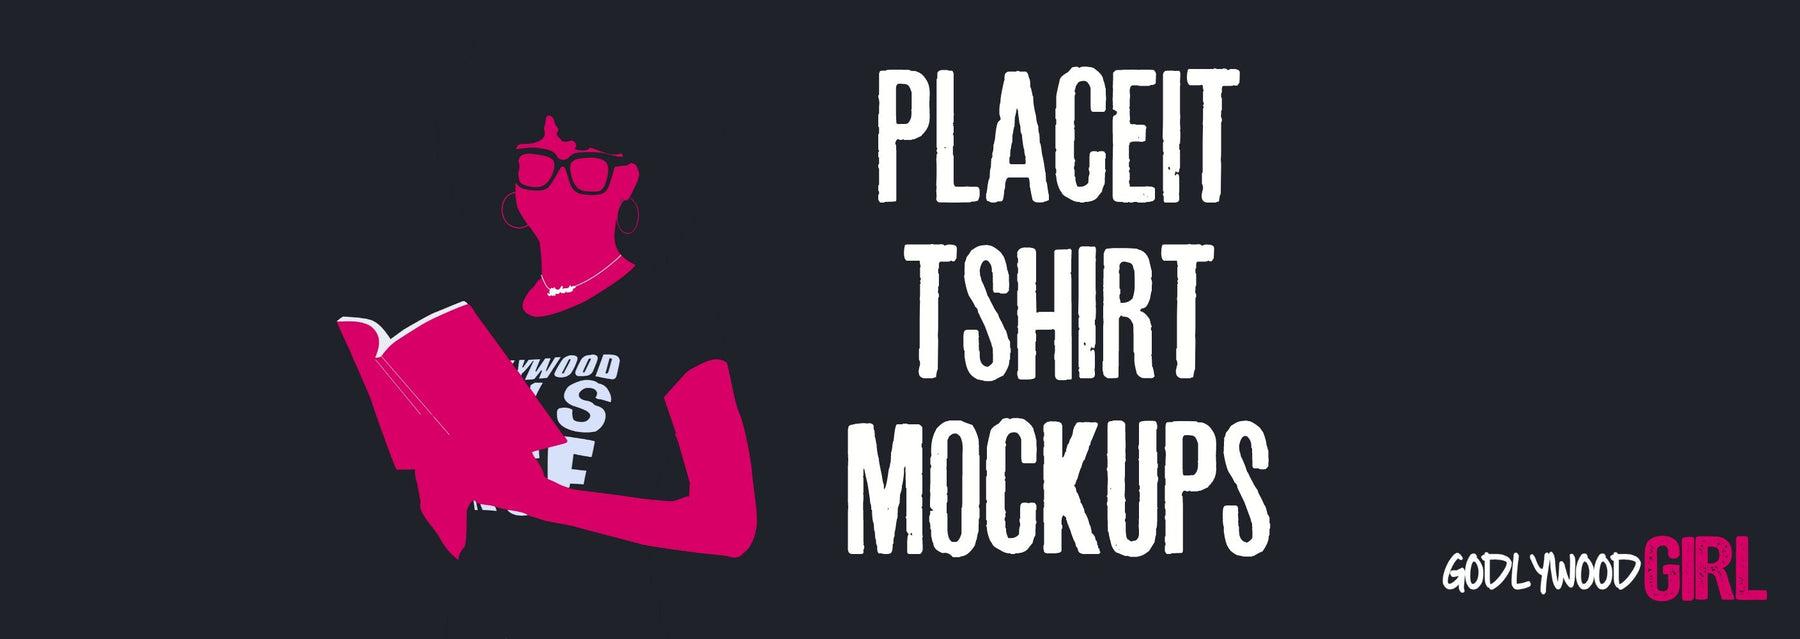 PLACEIT T-SHIRT MOCKUP (2019) | How To Use Placeit To Create Mockups For Christian T-Shirt Business